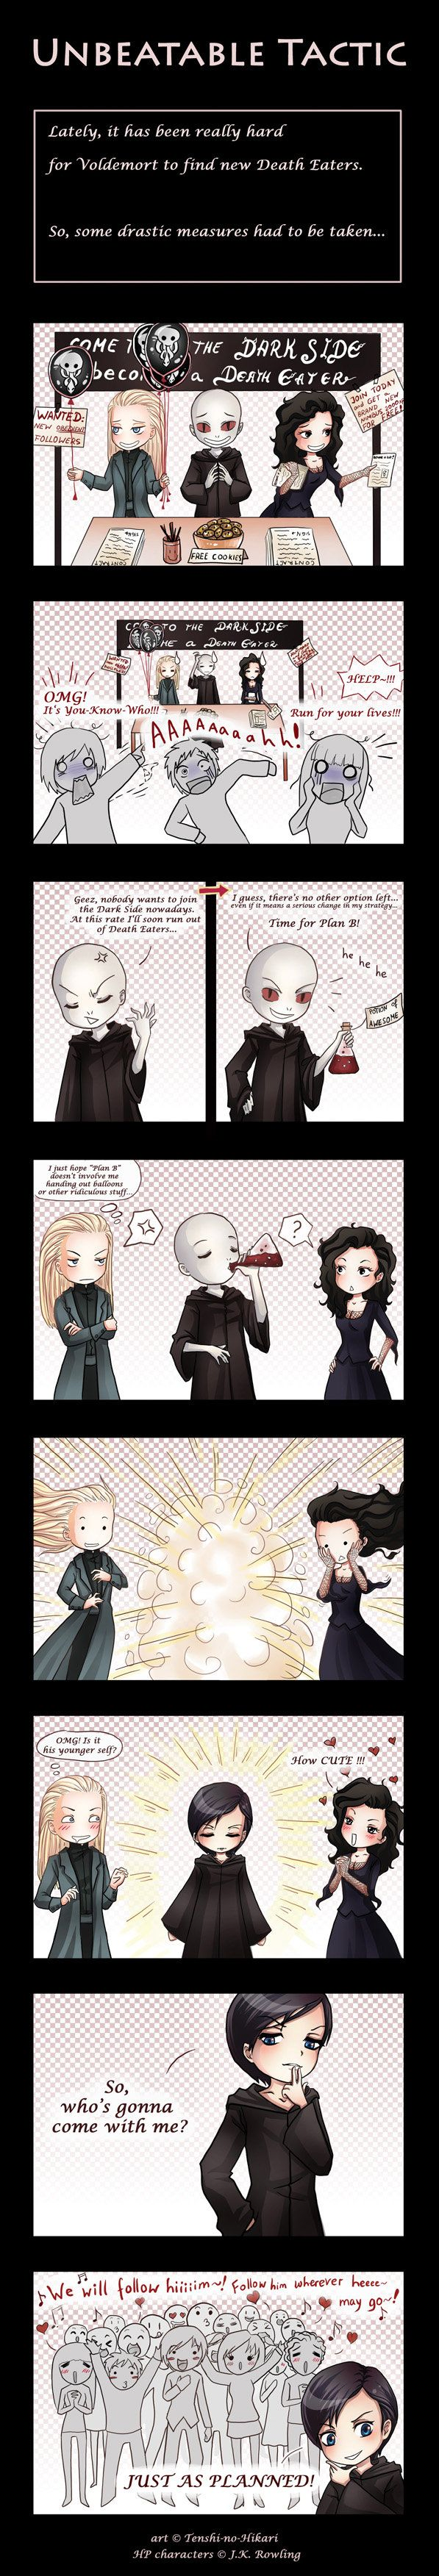 Lately it has been really hard for Voldemort to find new Death Eaters.    So some drastic  measures had to be taken... - Unbeatable Tactic by Tenshi-no-Hikari.deviantart.com on @DeviantArt